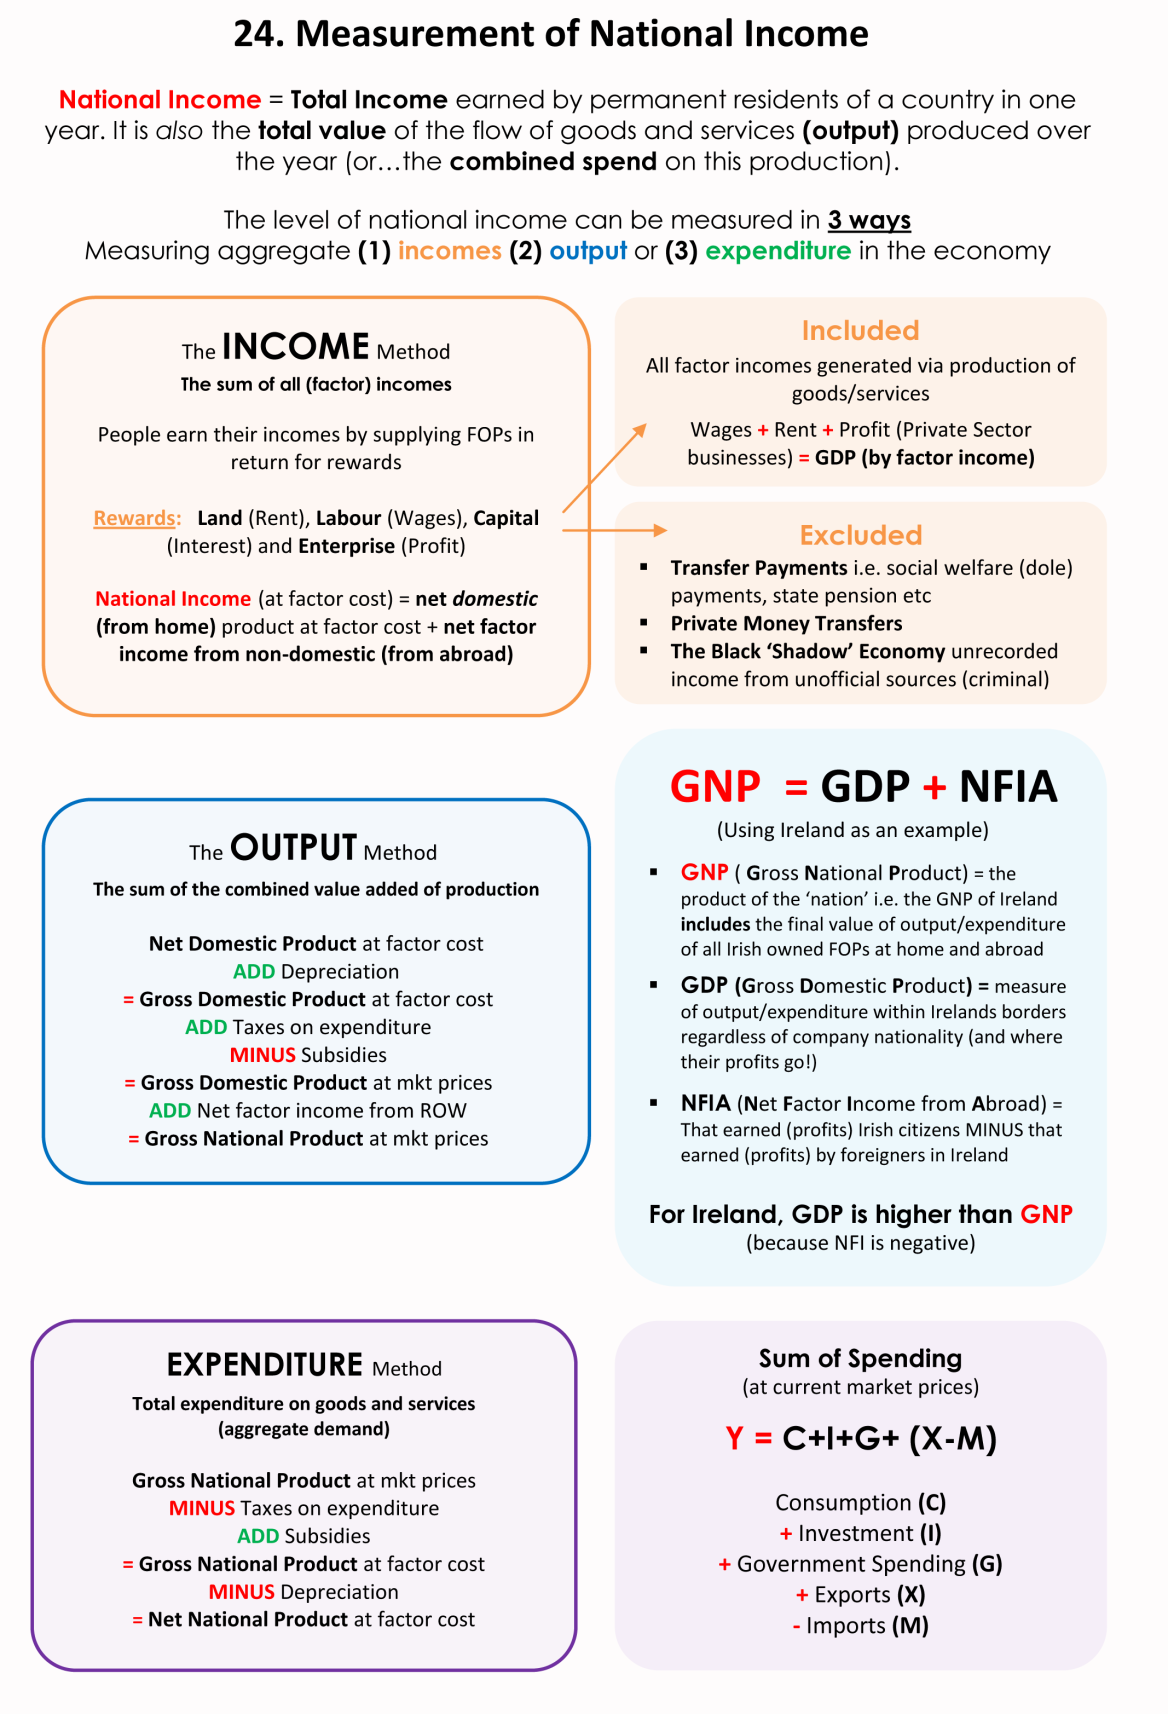 24 Measurement Of National Income